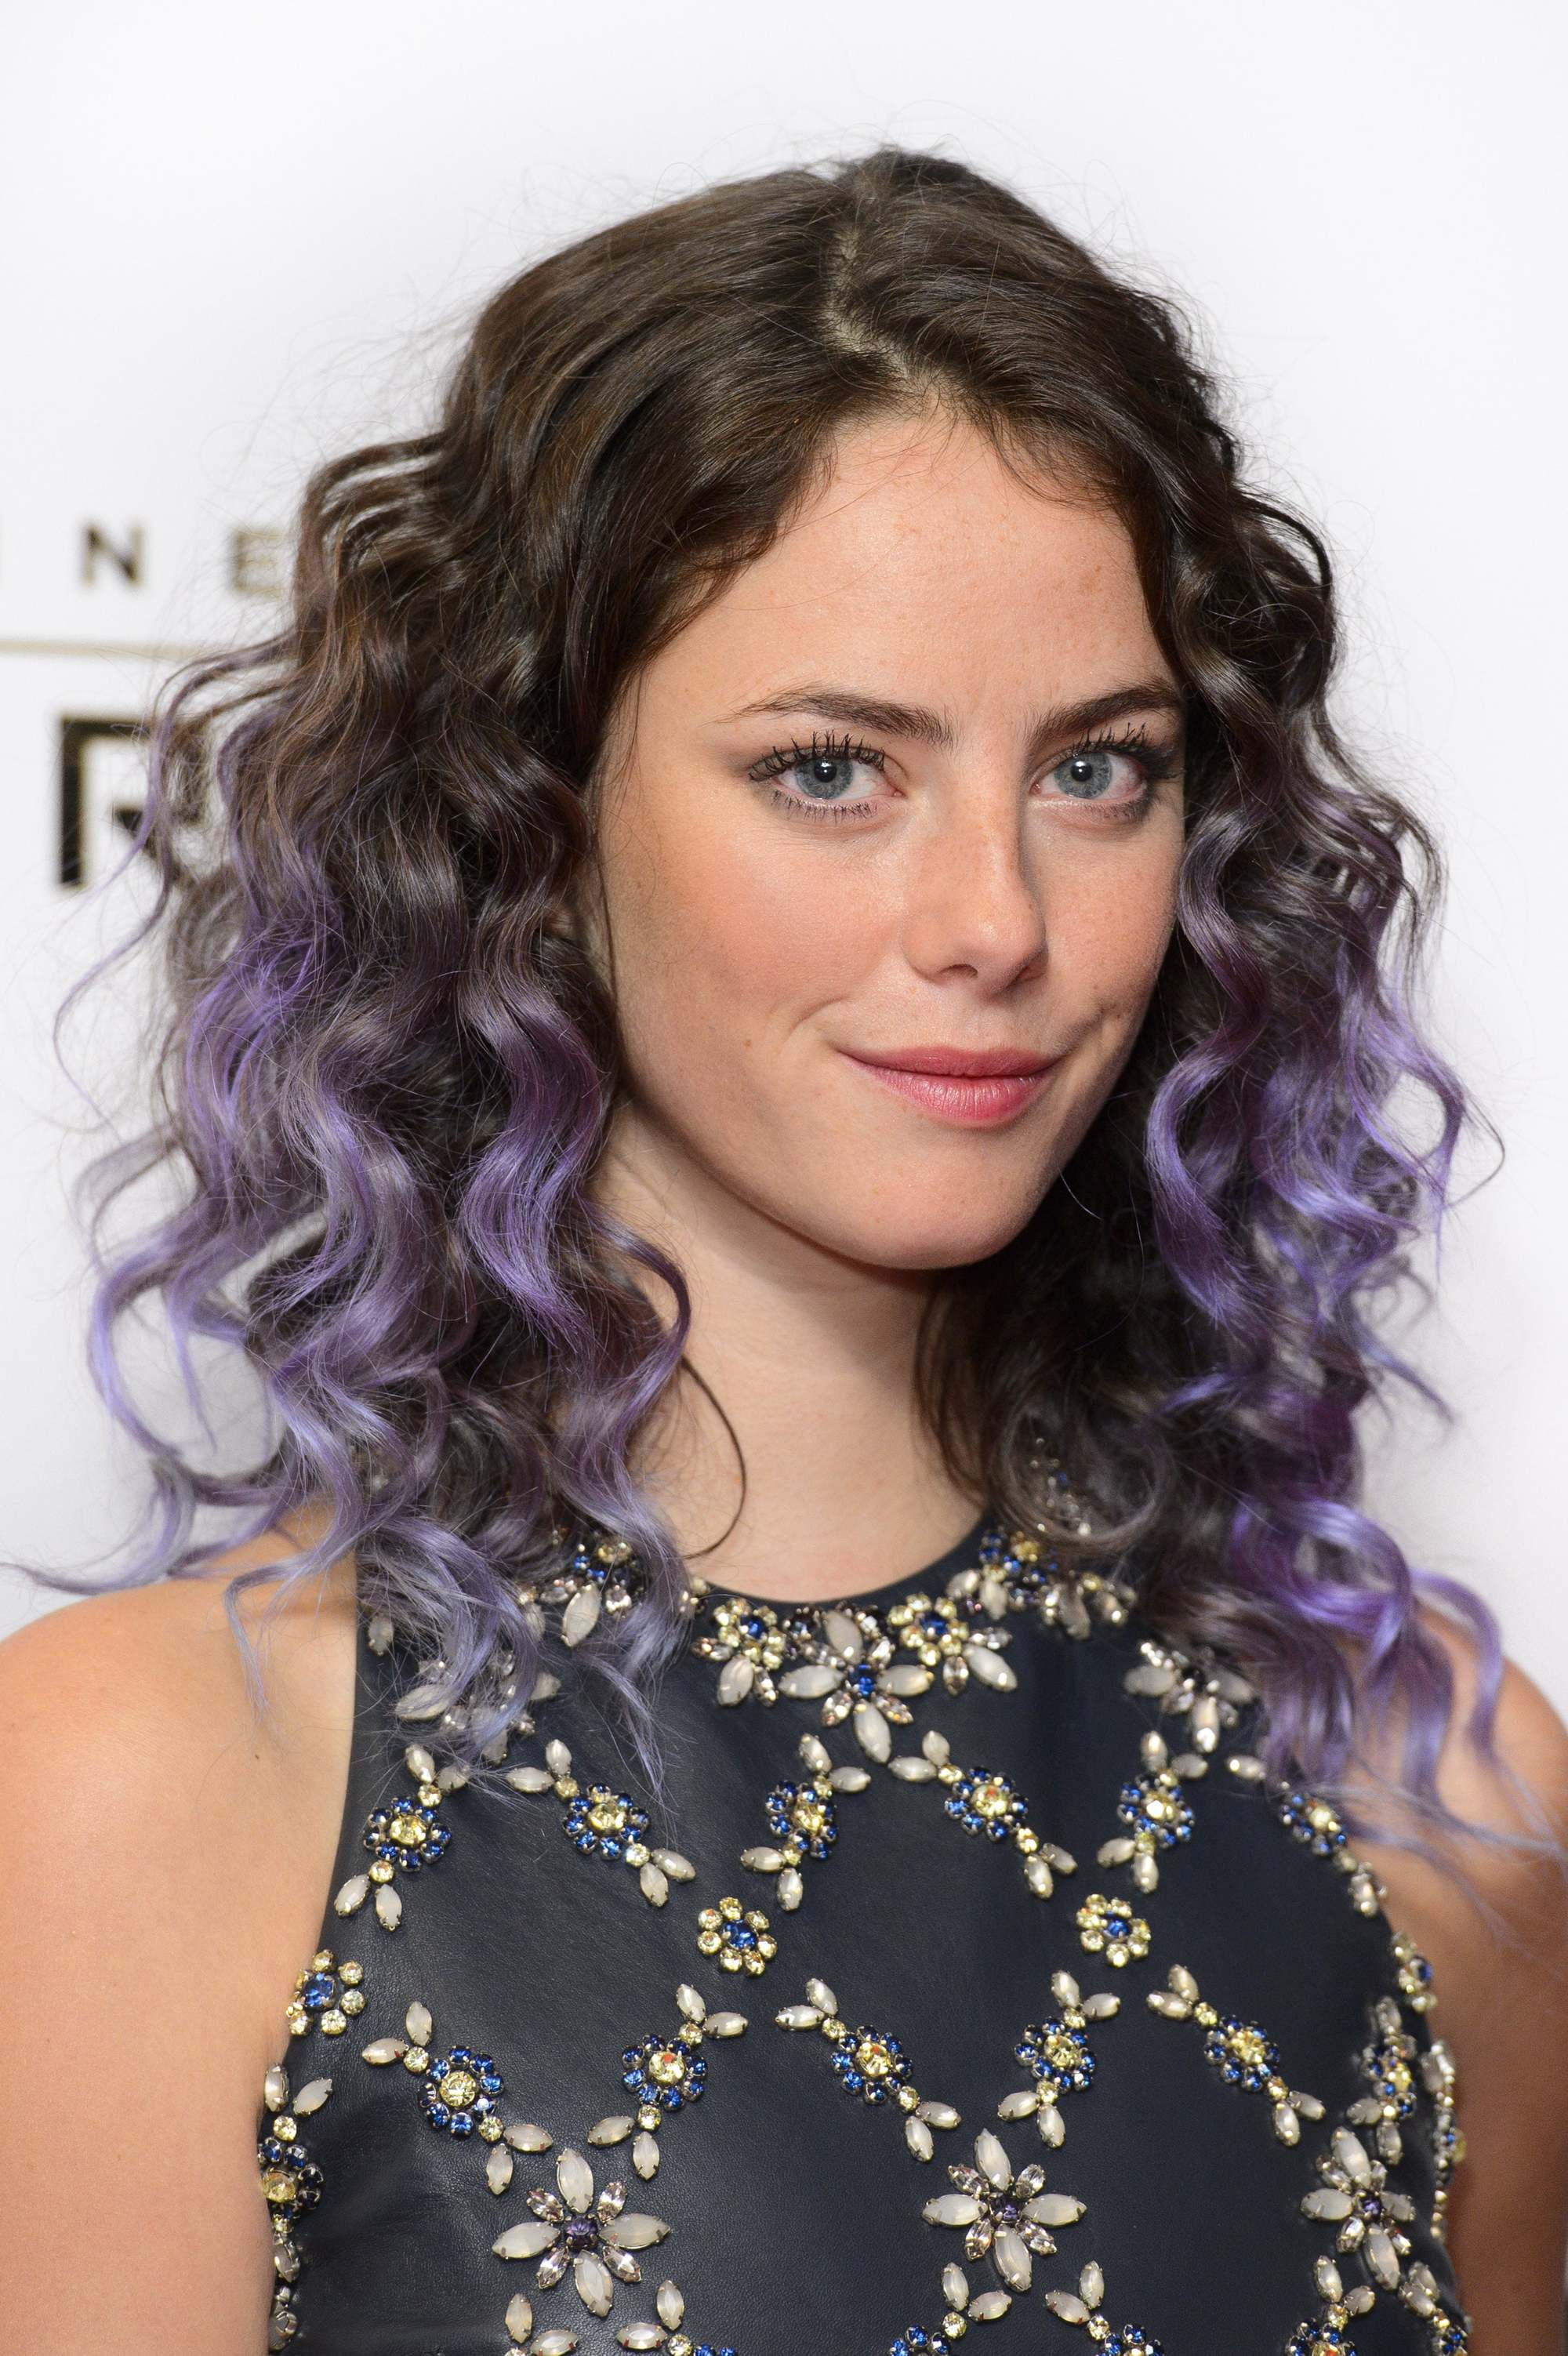 purple hair: 15 pretty looks that will make you want to dye your hair